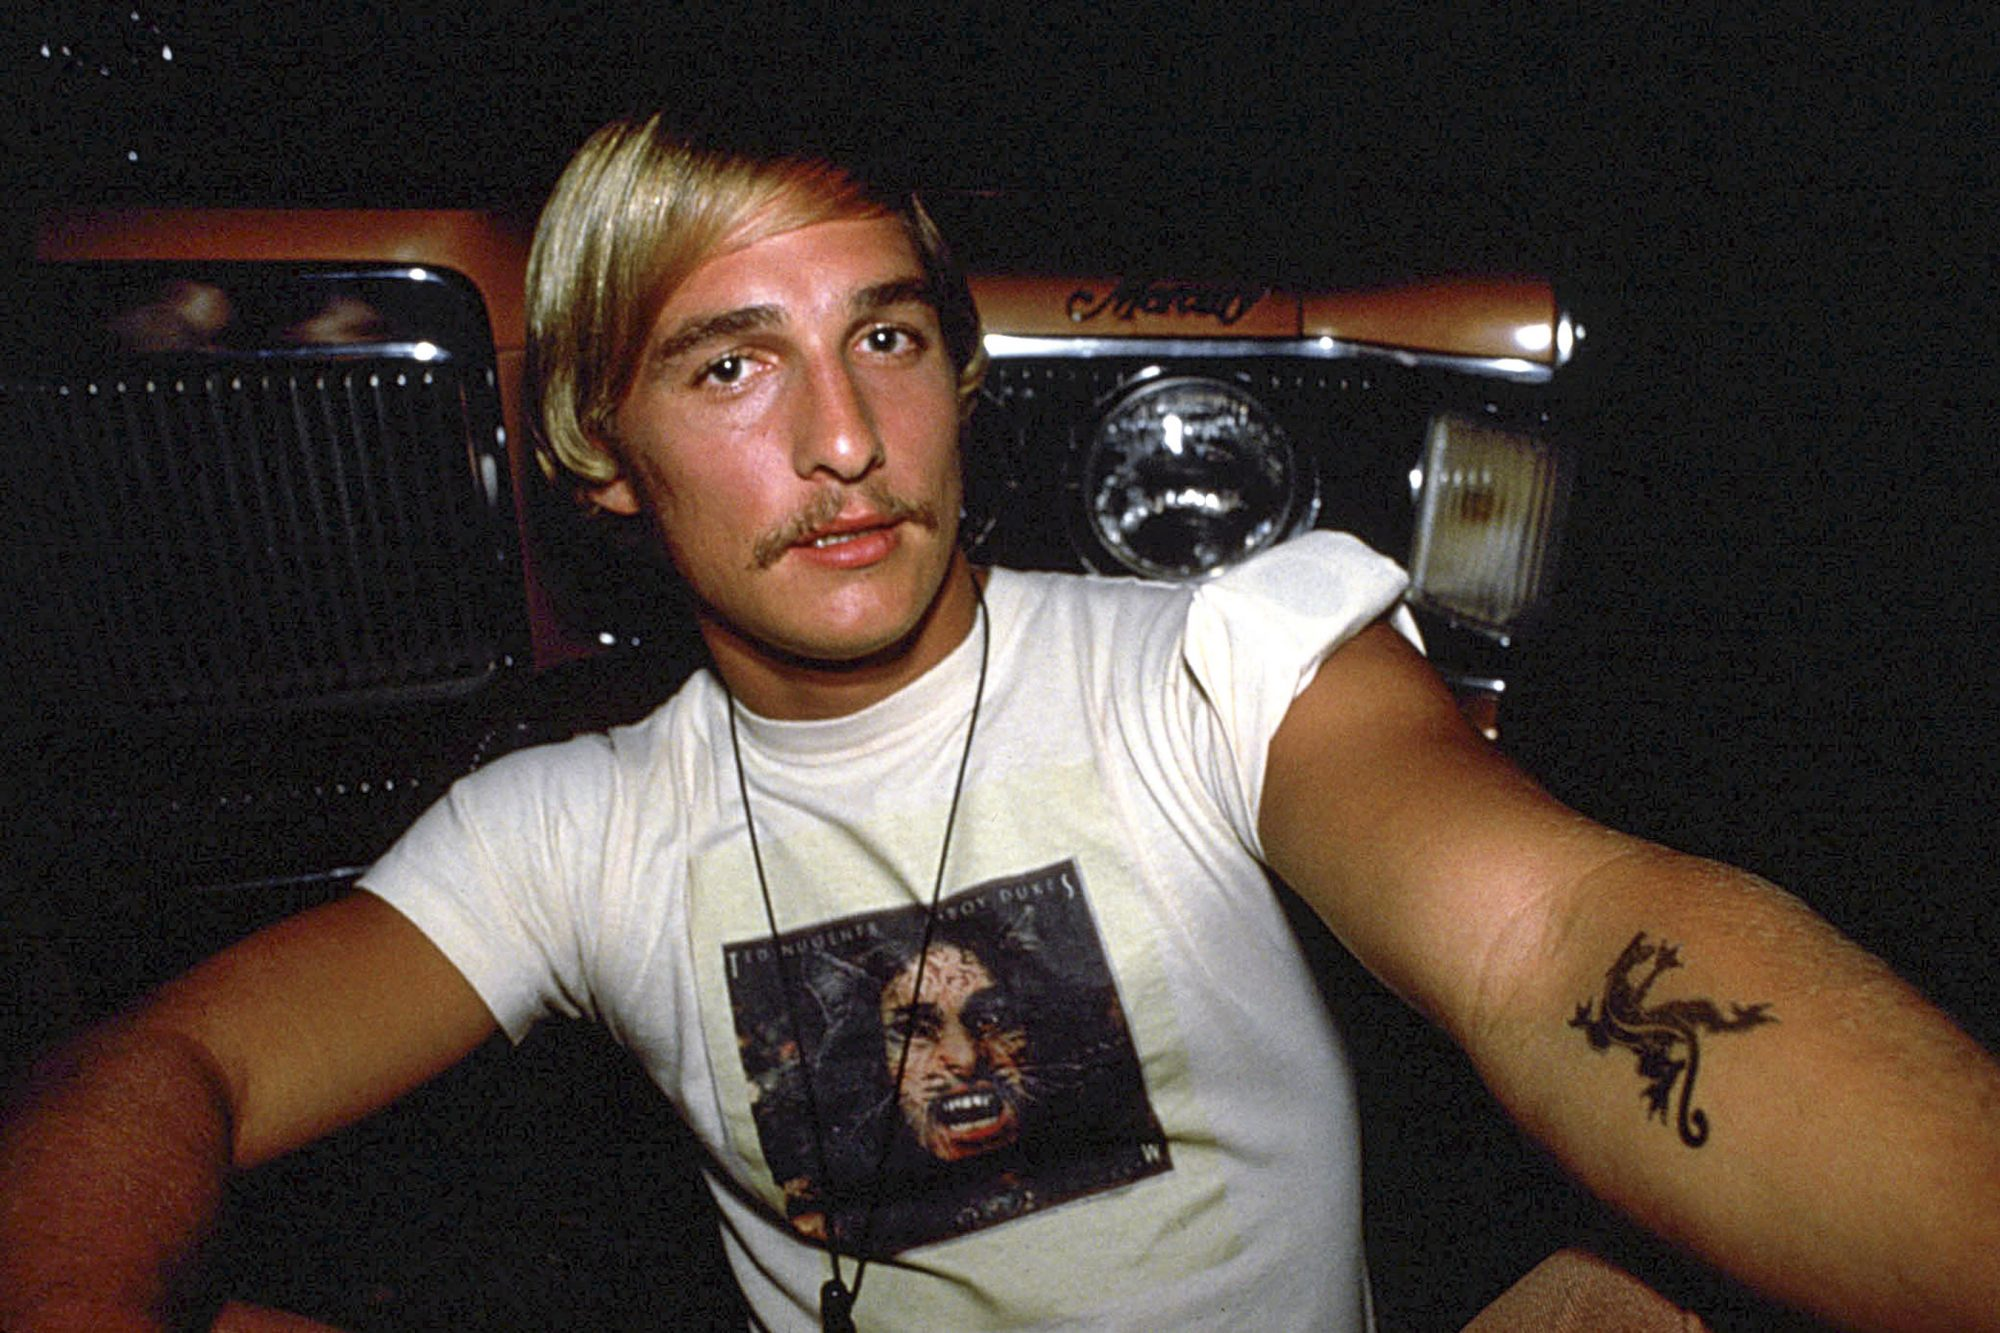 DAZED AND CONFUSED, Matthew McConaughey, 1993, (c) Gramercy Pictures/courtesy Everett Collection